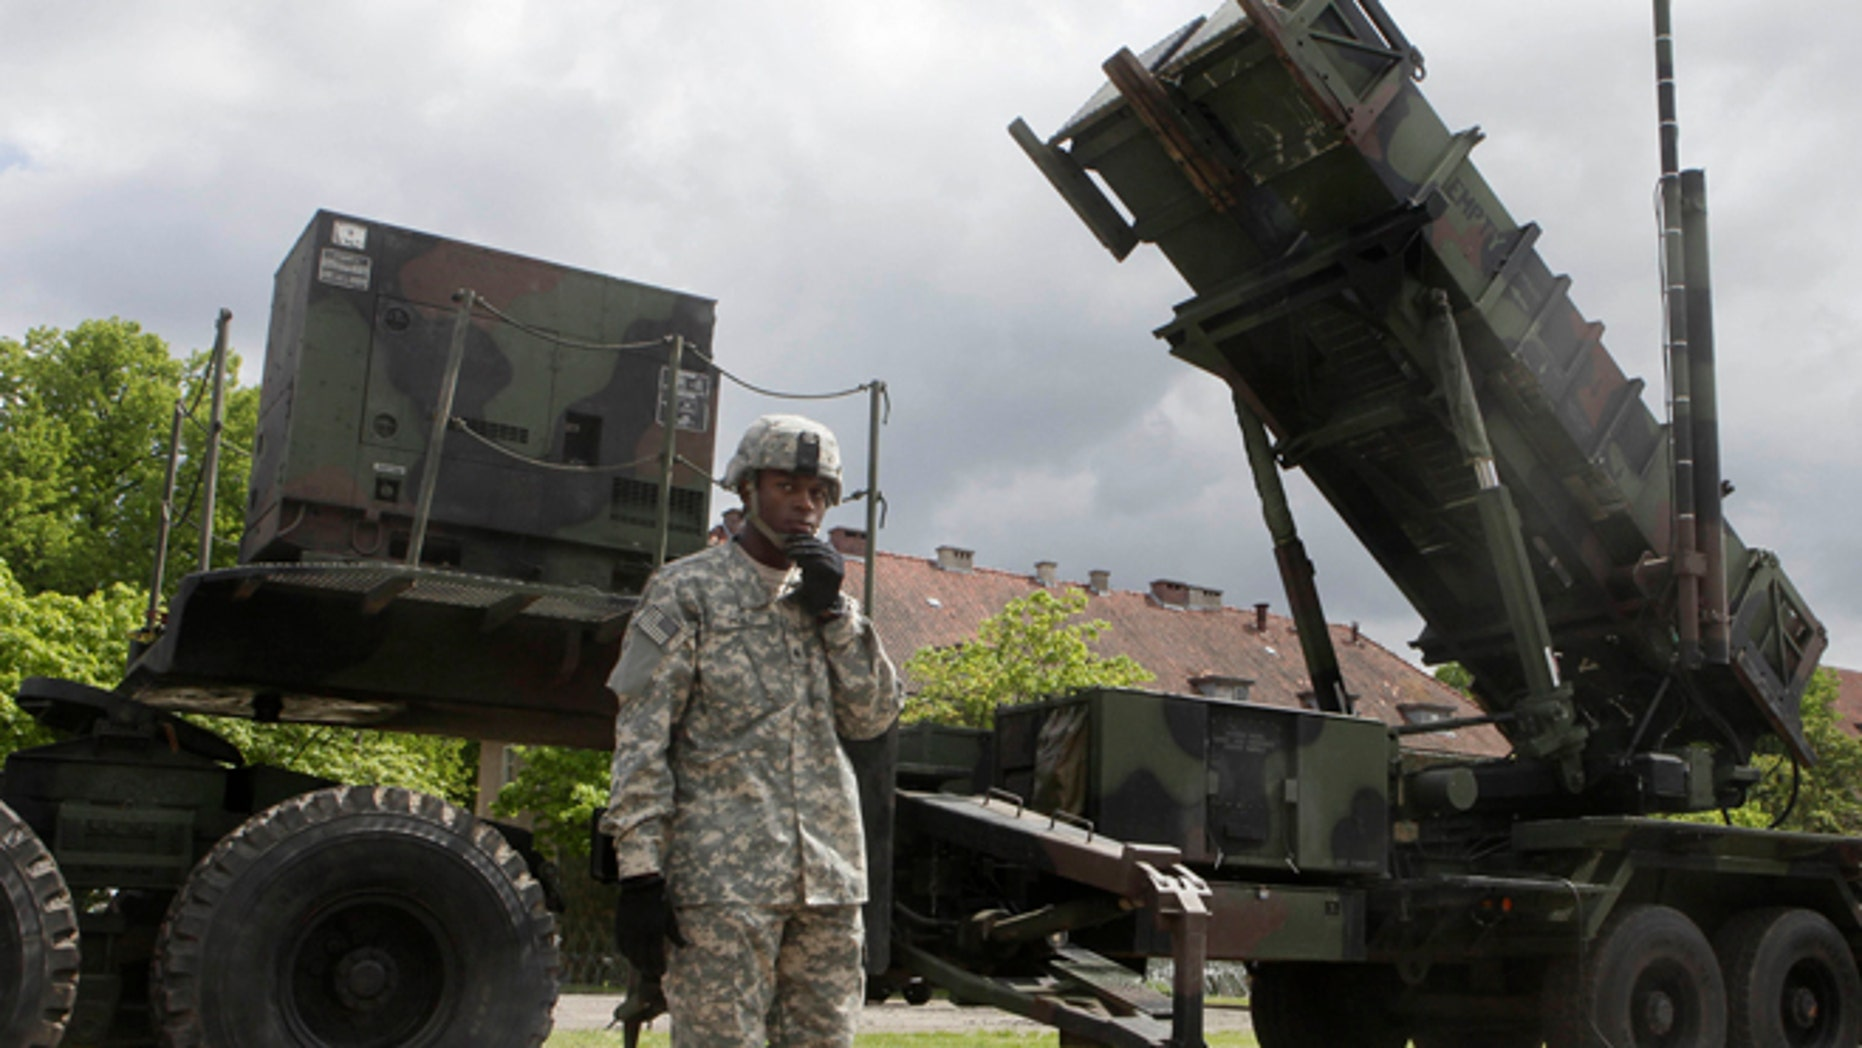 May 26, 2010: A U.S. soldier stands next to a Patriot surface-to-air missile battery at an army base in Morag, Poland.